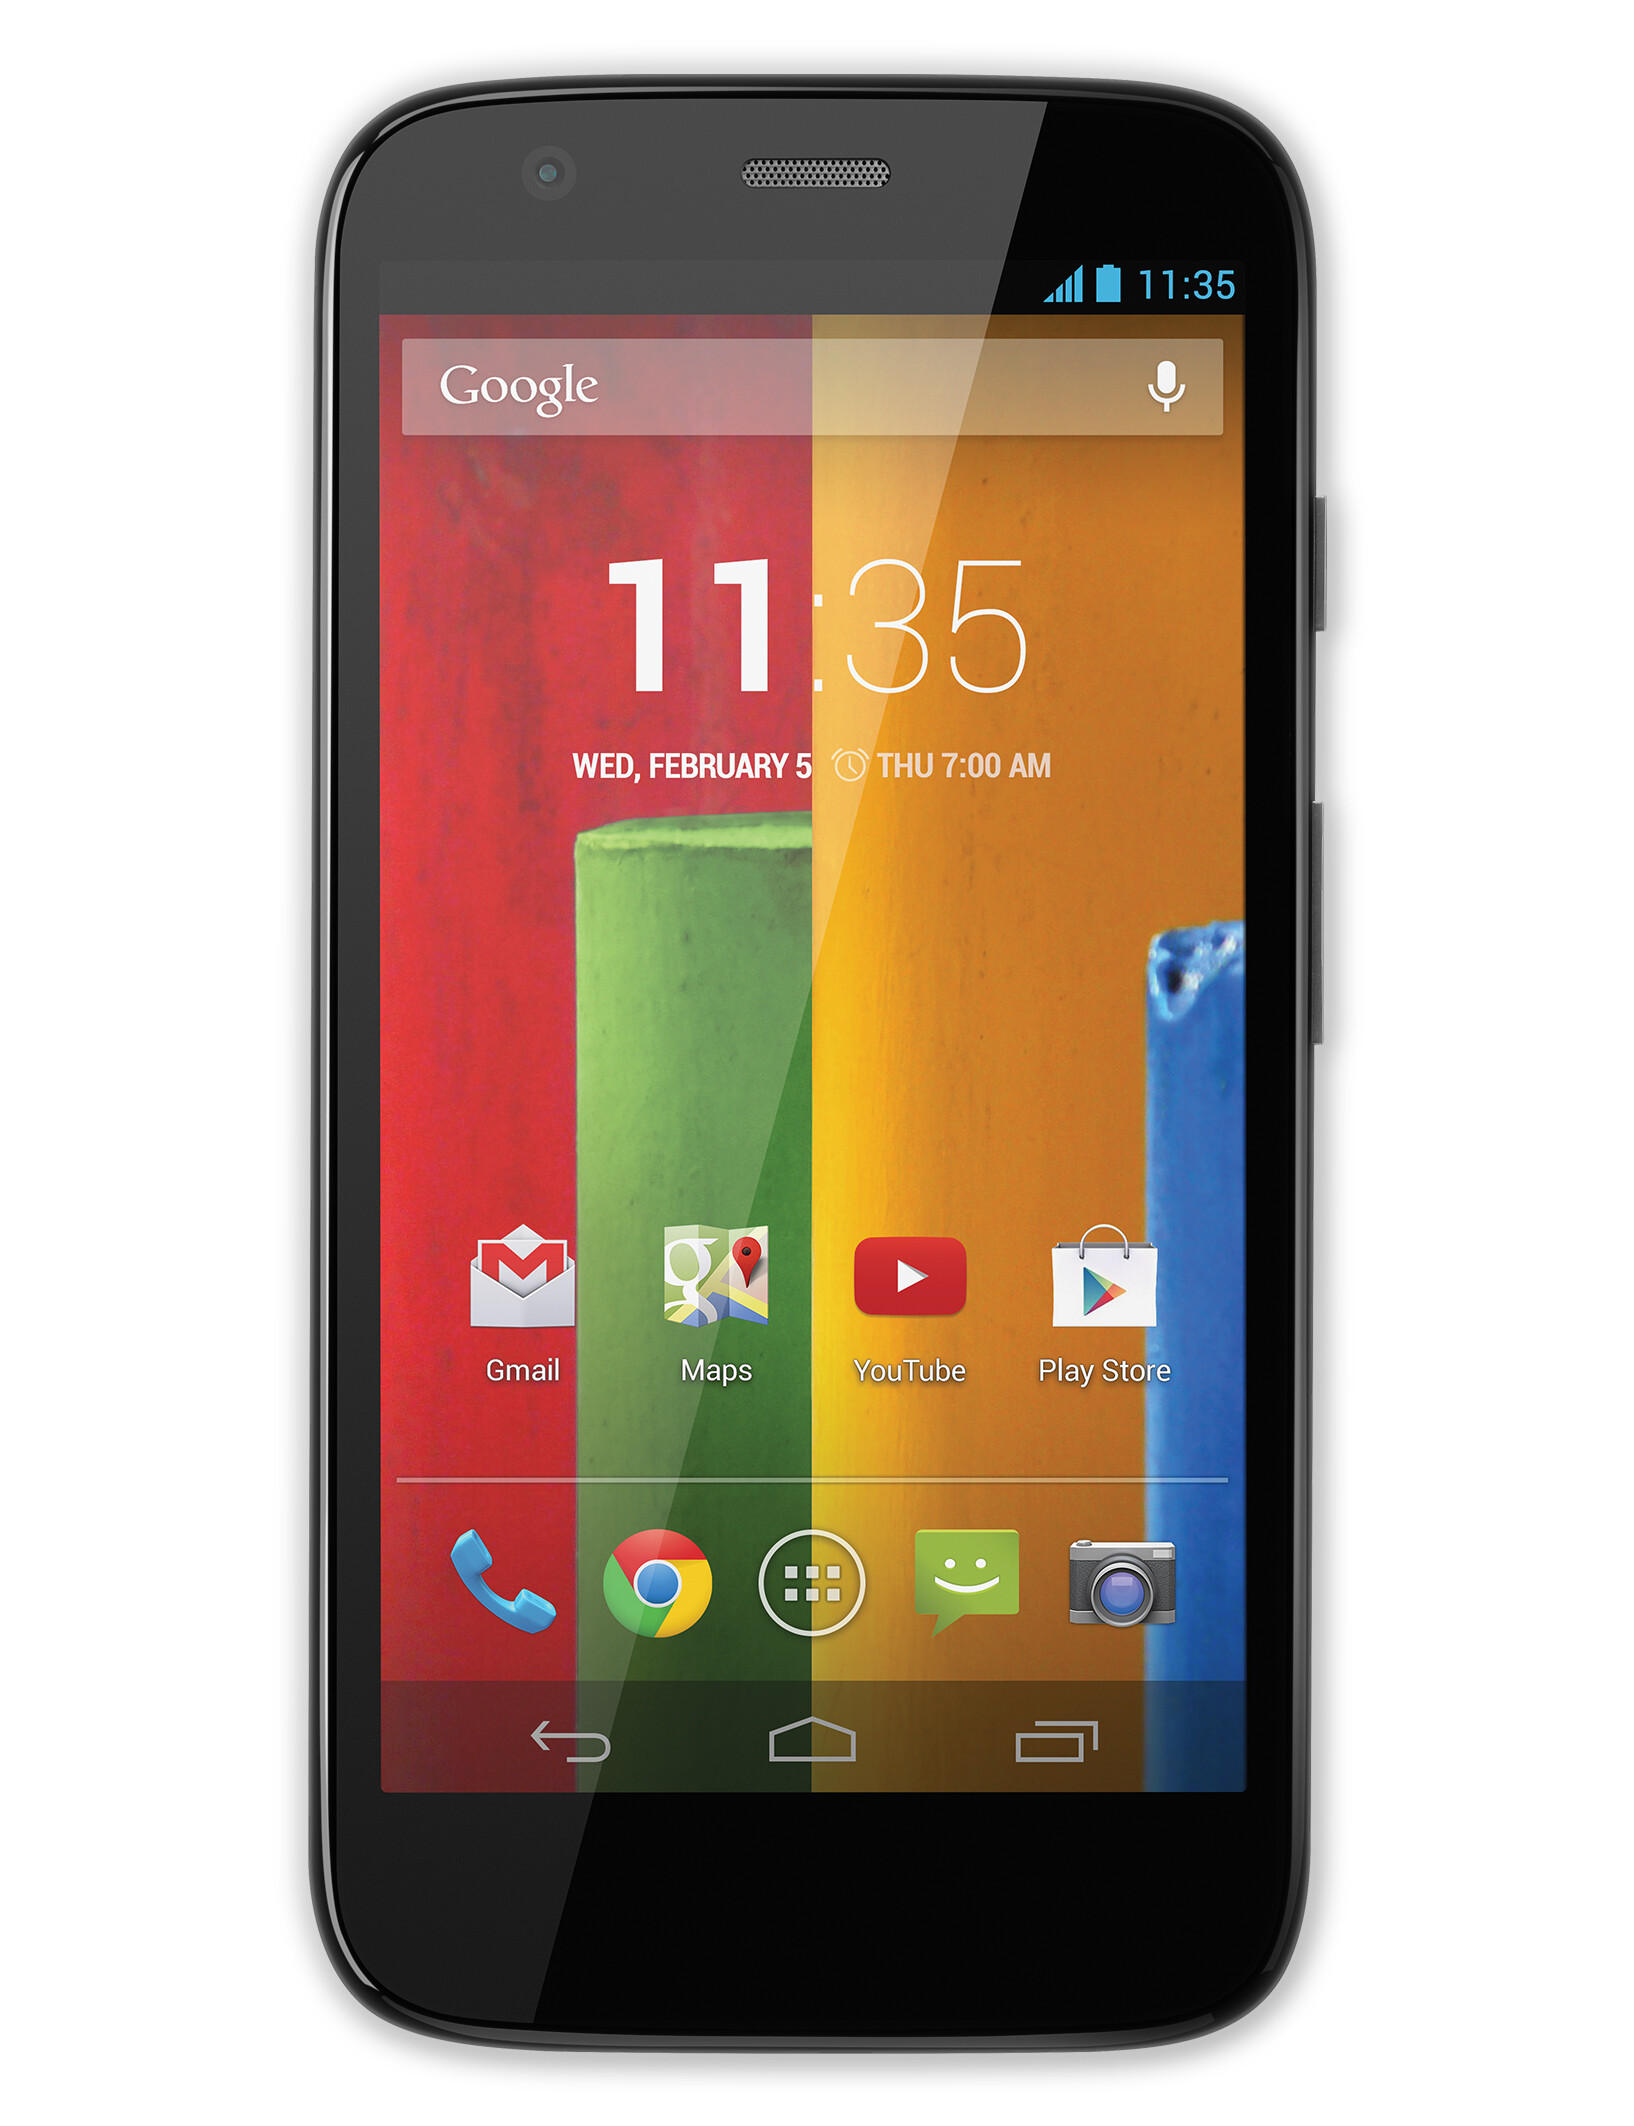 Camera Boost Mobile Android Phones For Sale boost mobile motorola android phones